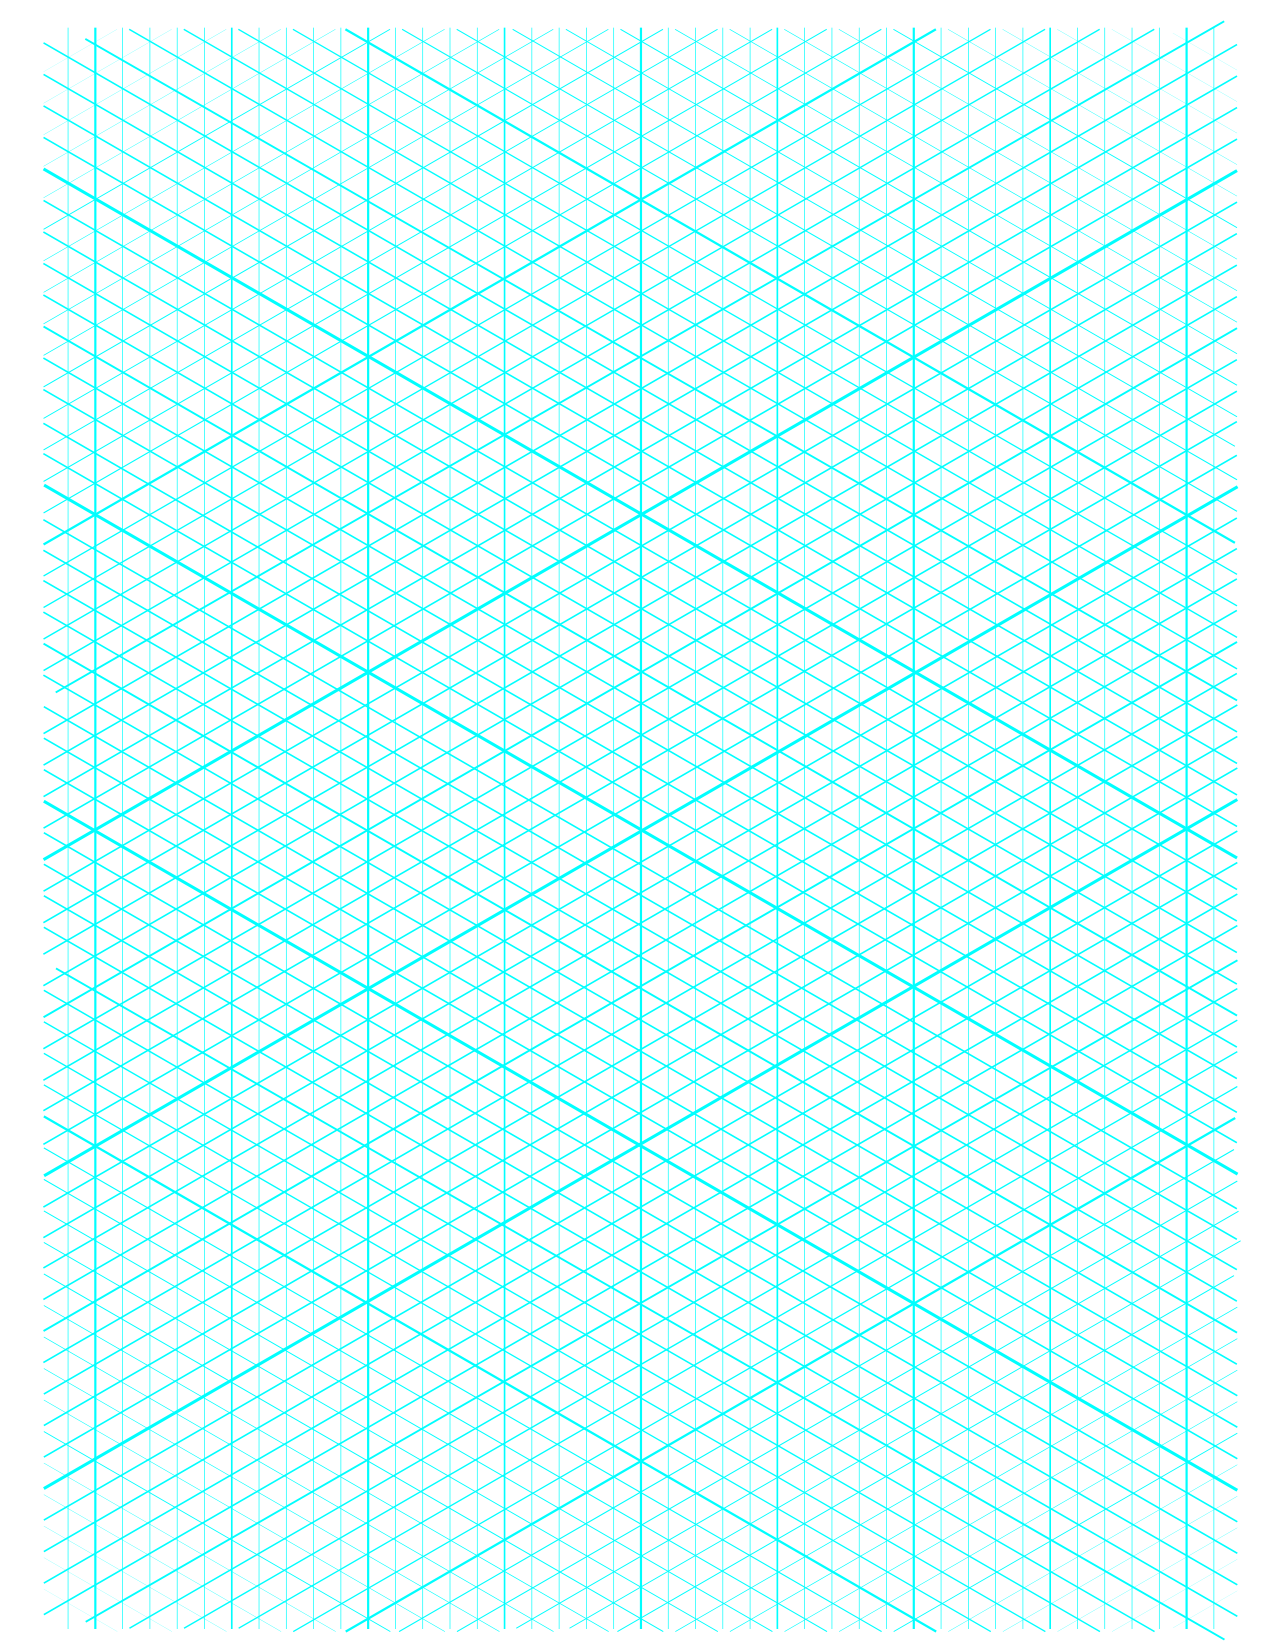 File:Isometric graph paper YP.png.